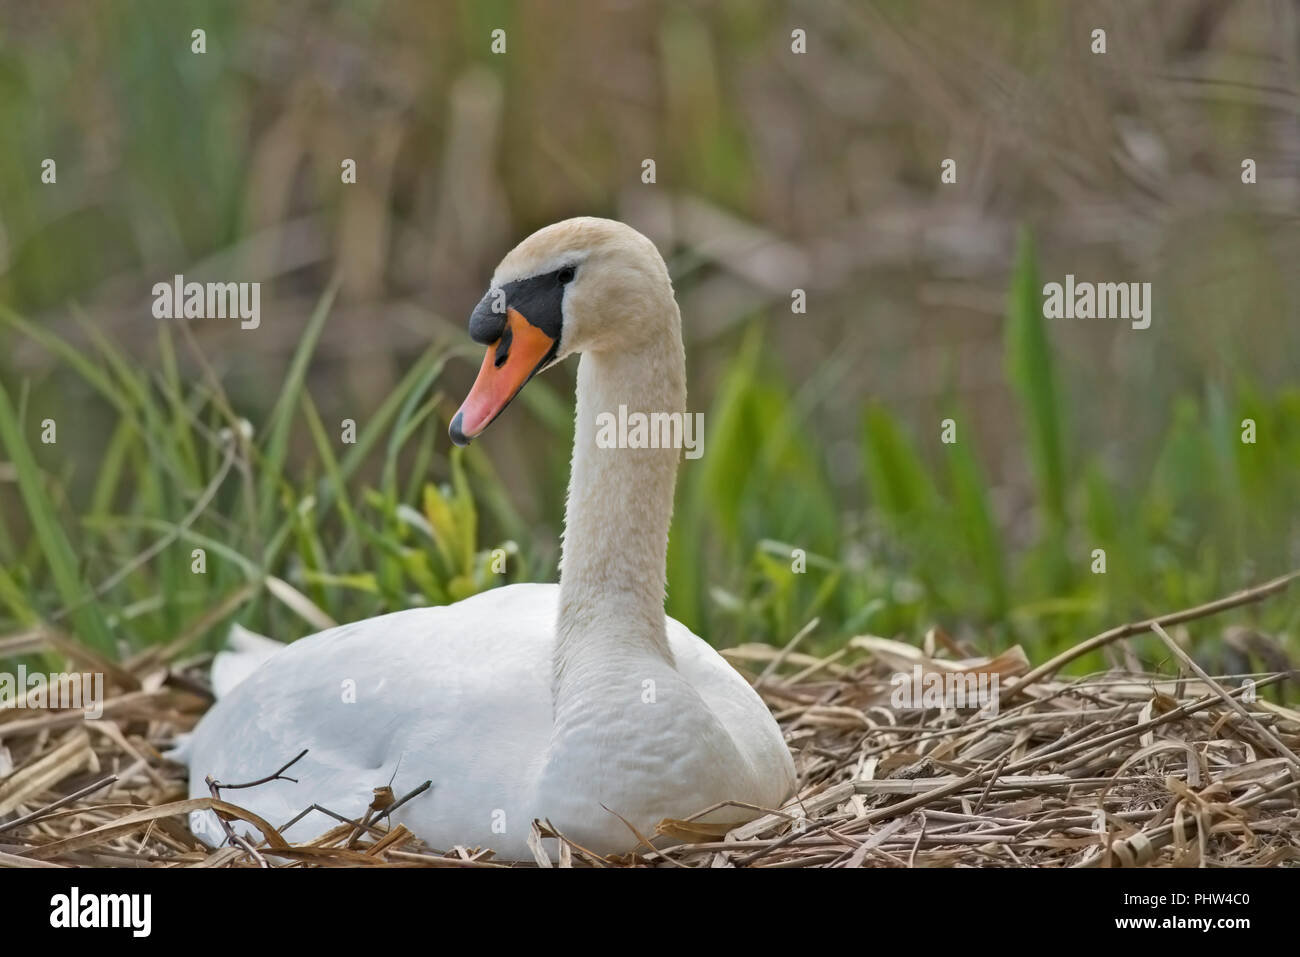 Male mute swan sitting on nest photographed at eye level facing to the right. Stock Photo